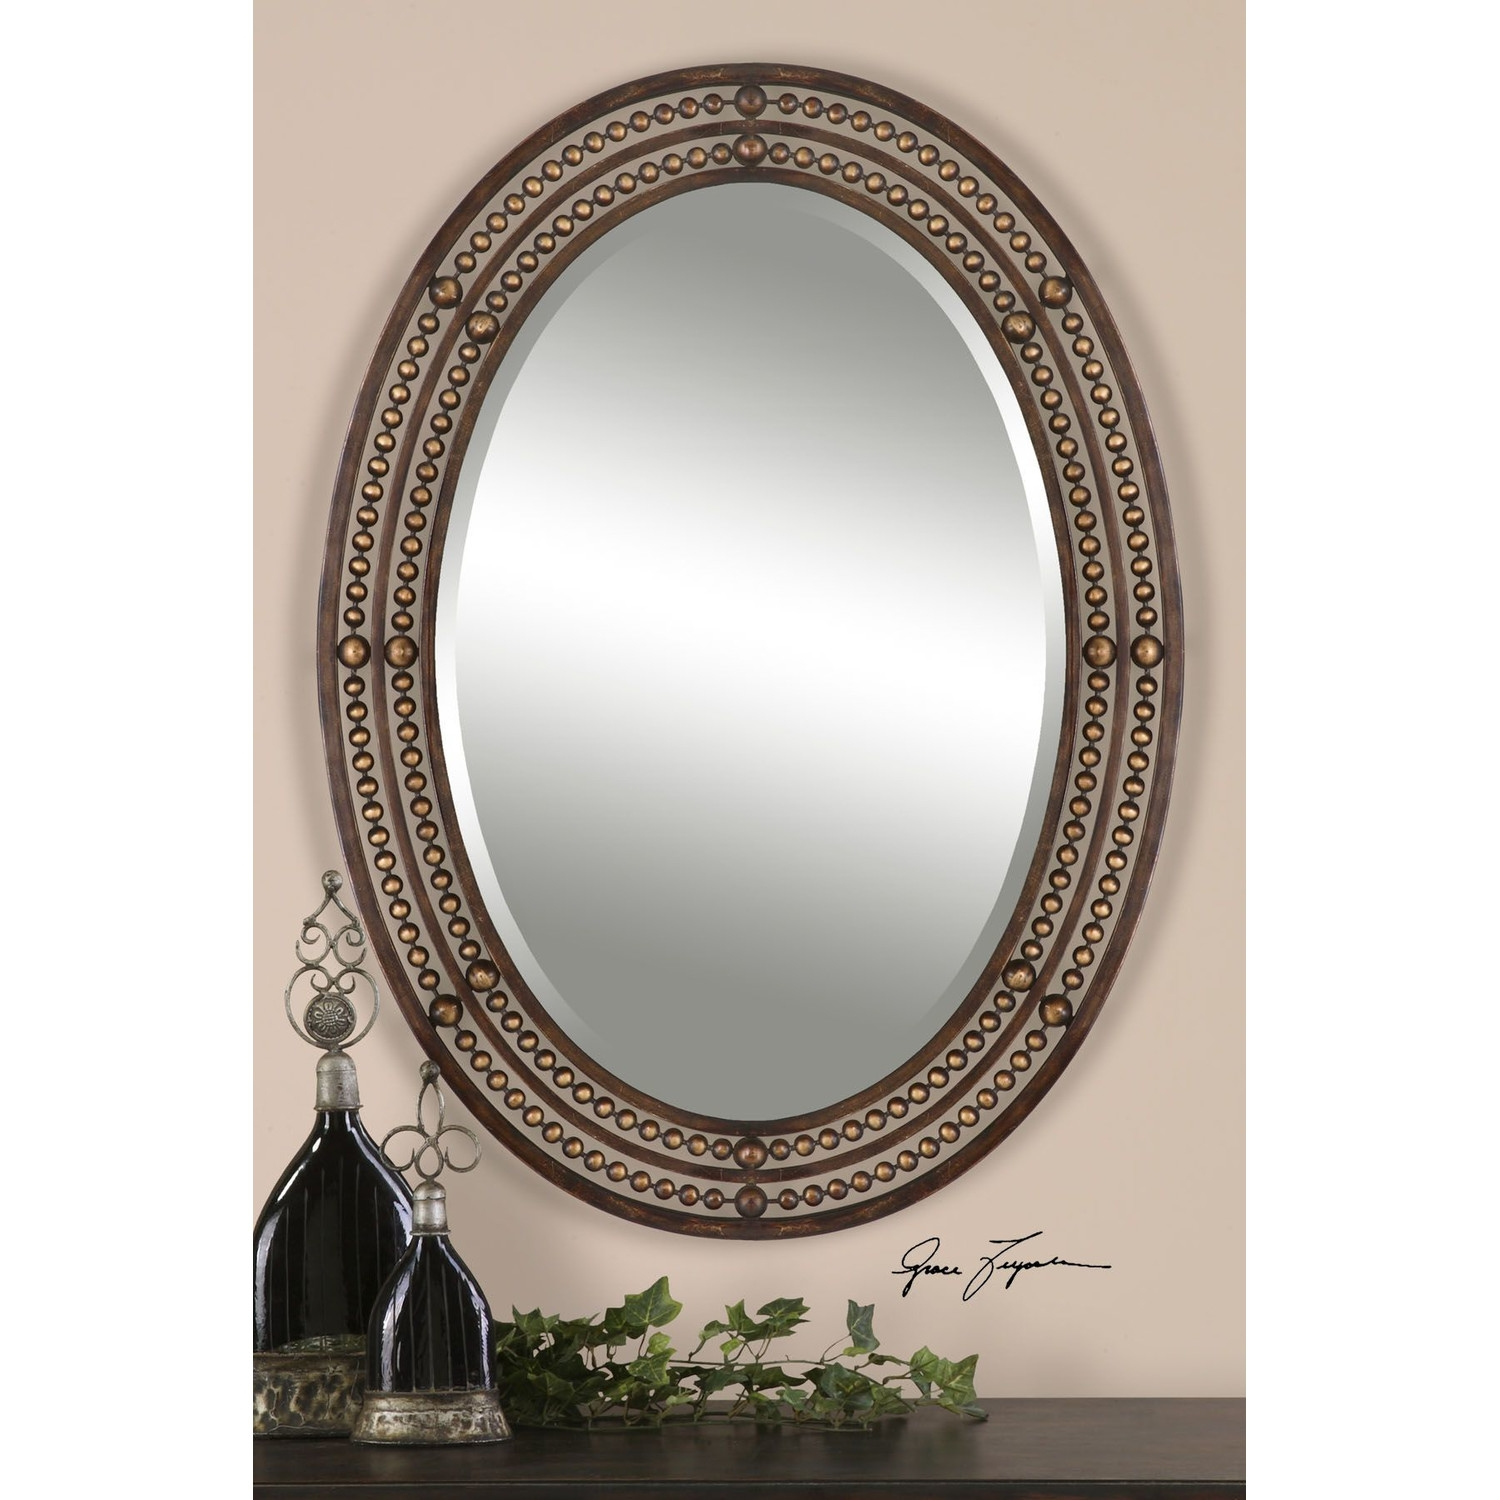 Mirrors For Bathrooms Awesome Mirrors For Bathrooms Led Bathroom With Large Oval Mirrors (Photo 13 of 15)